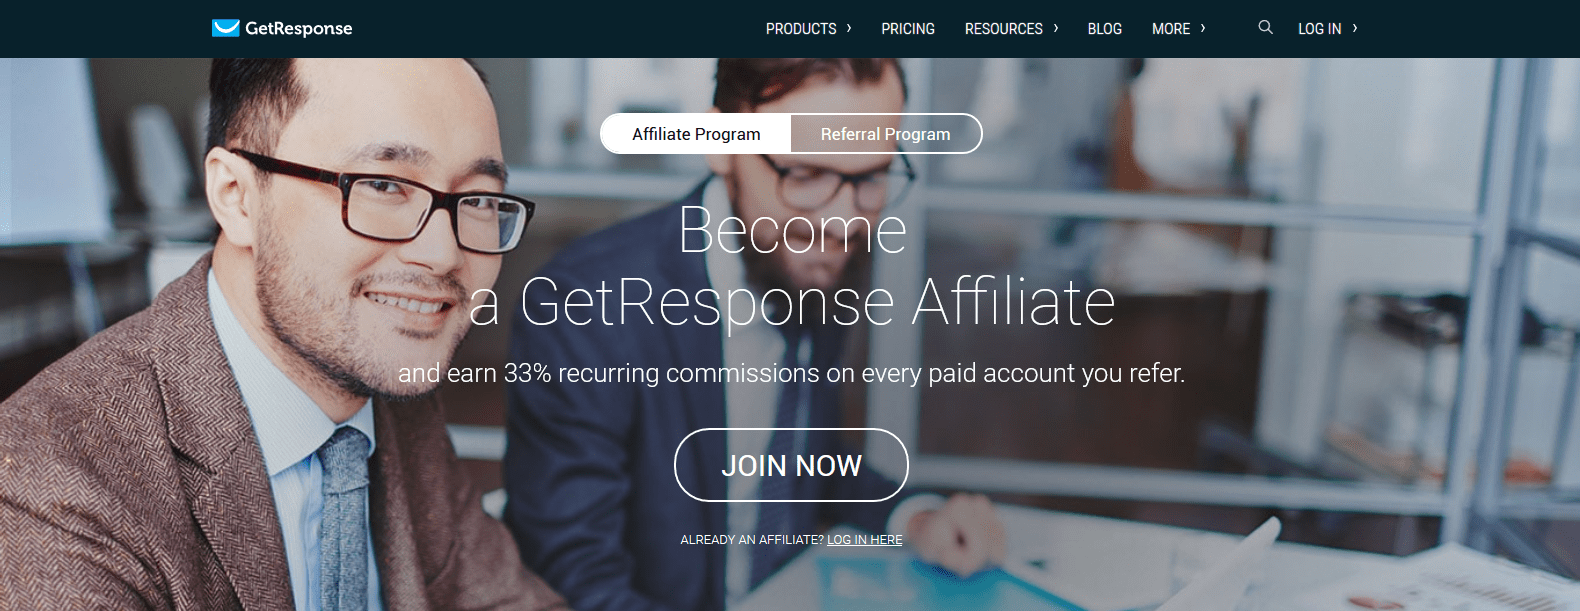 20 Best High Paying Referral Programs for Bloggers & Affiliates 2